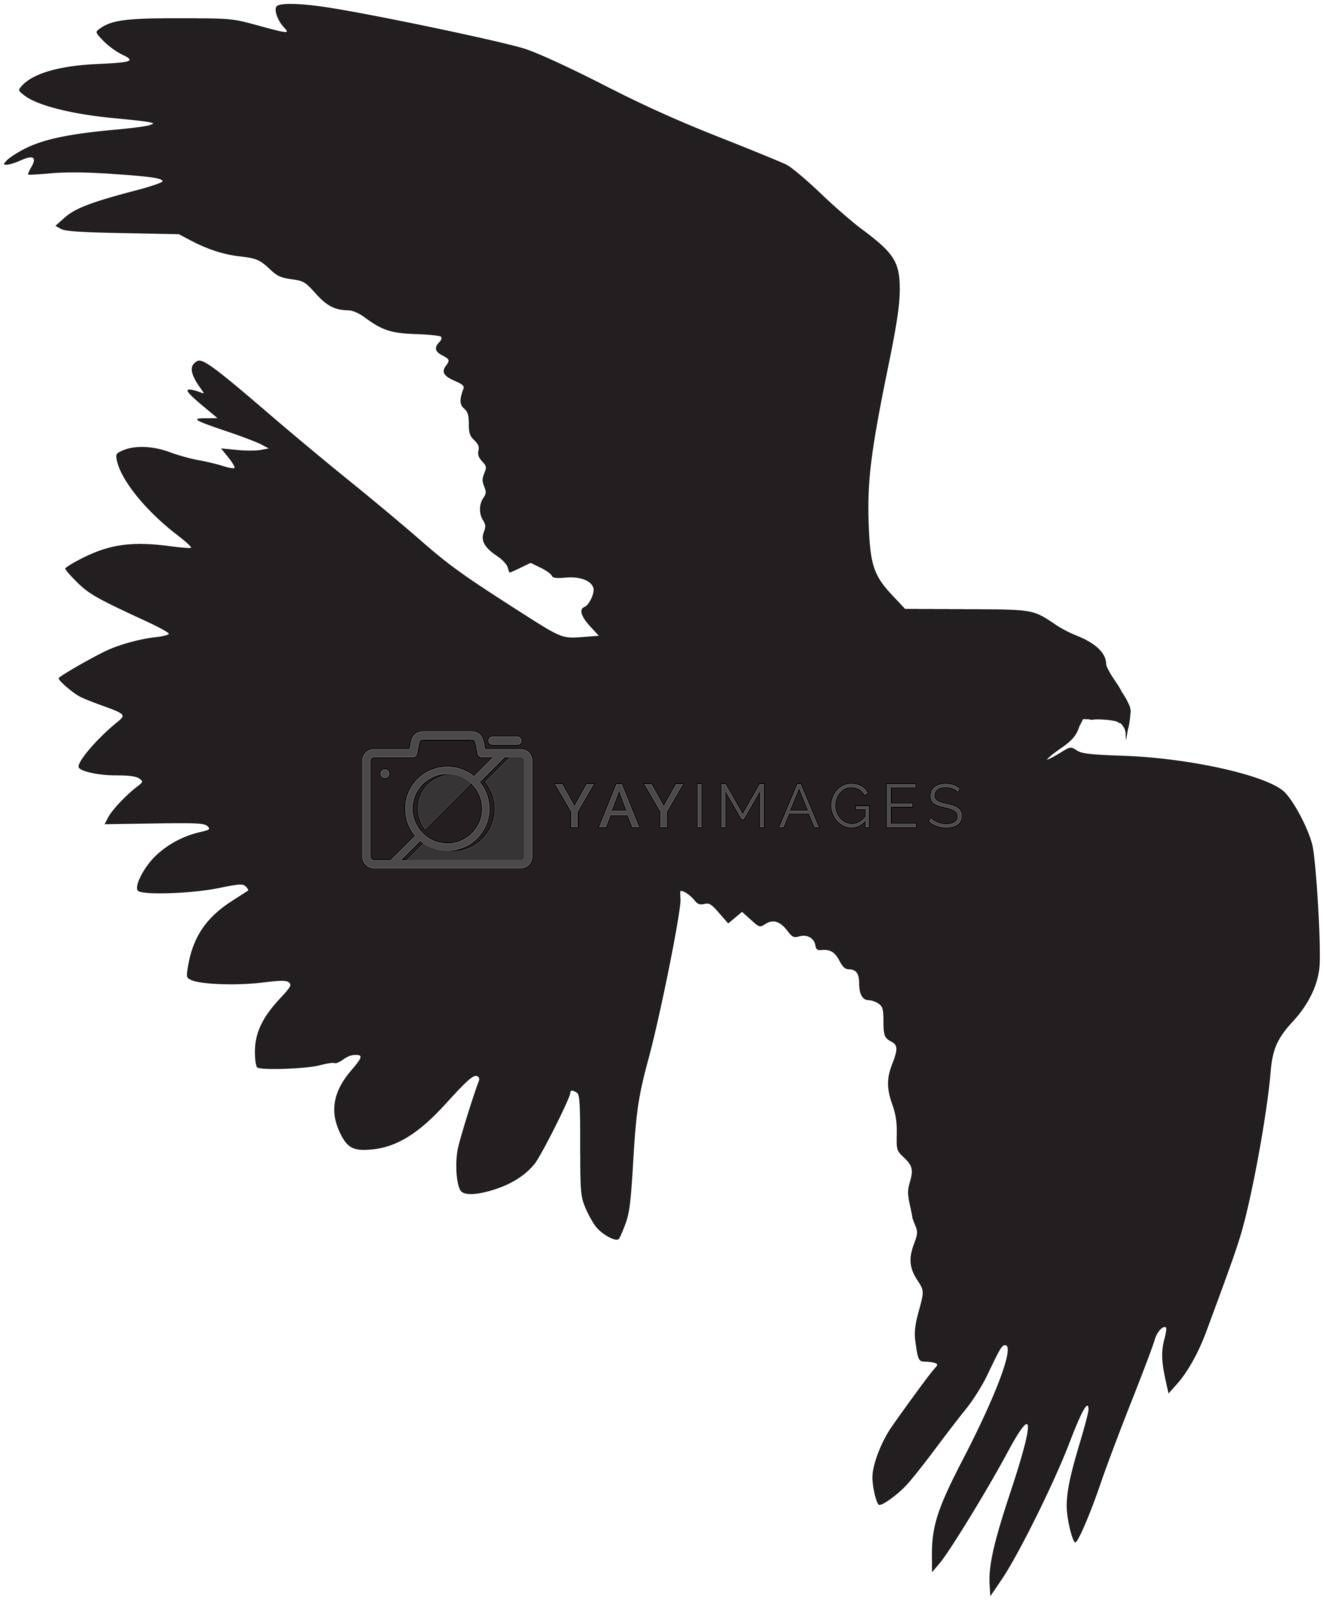 Illustration in style of black silhouette of harrier